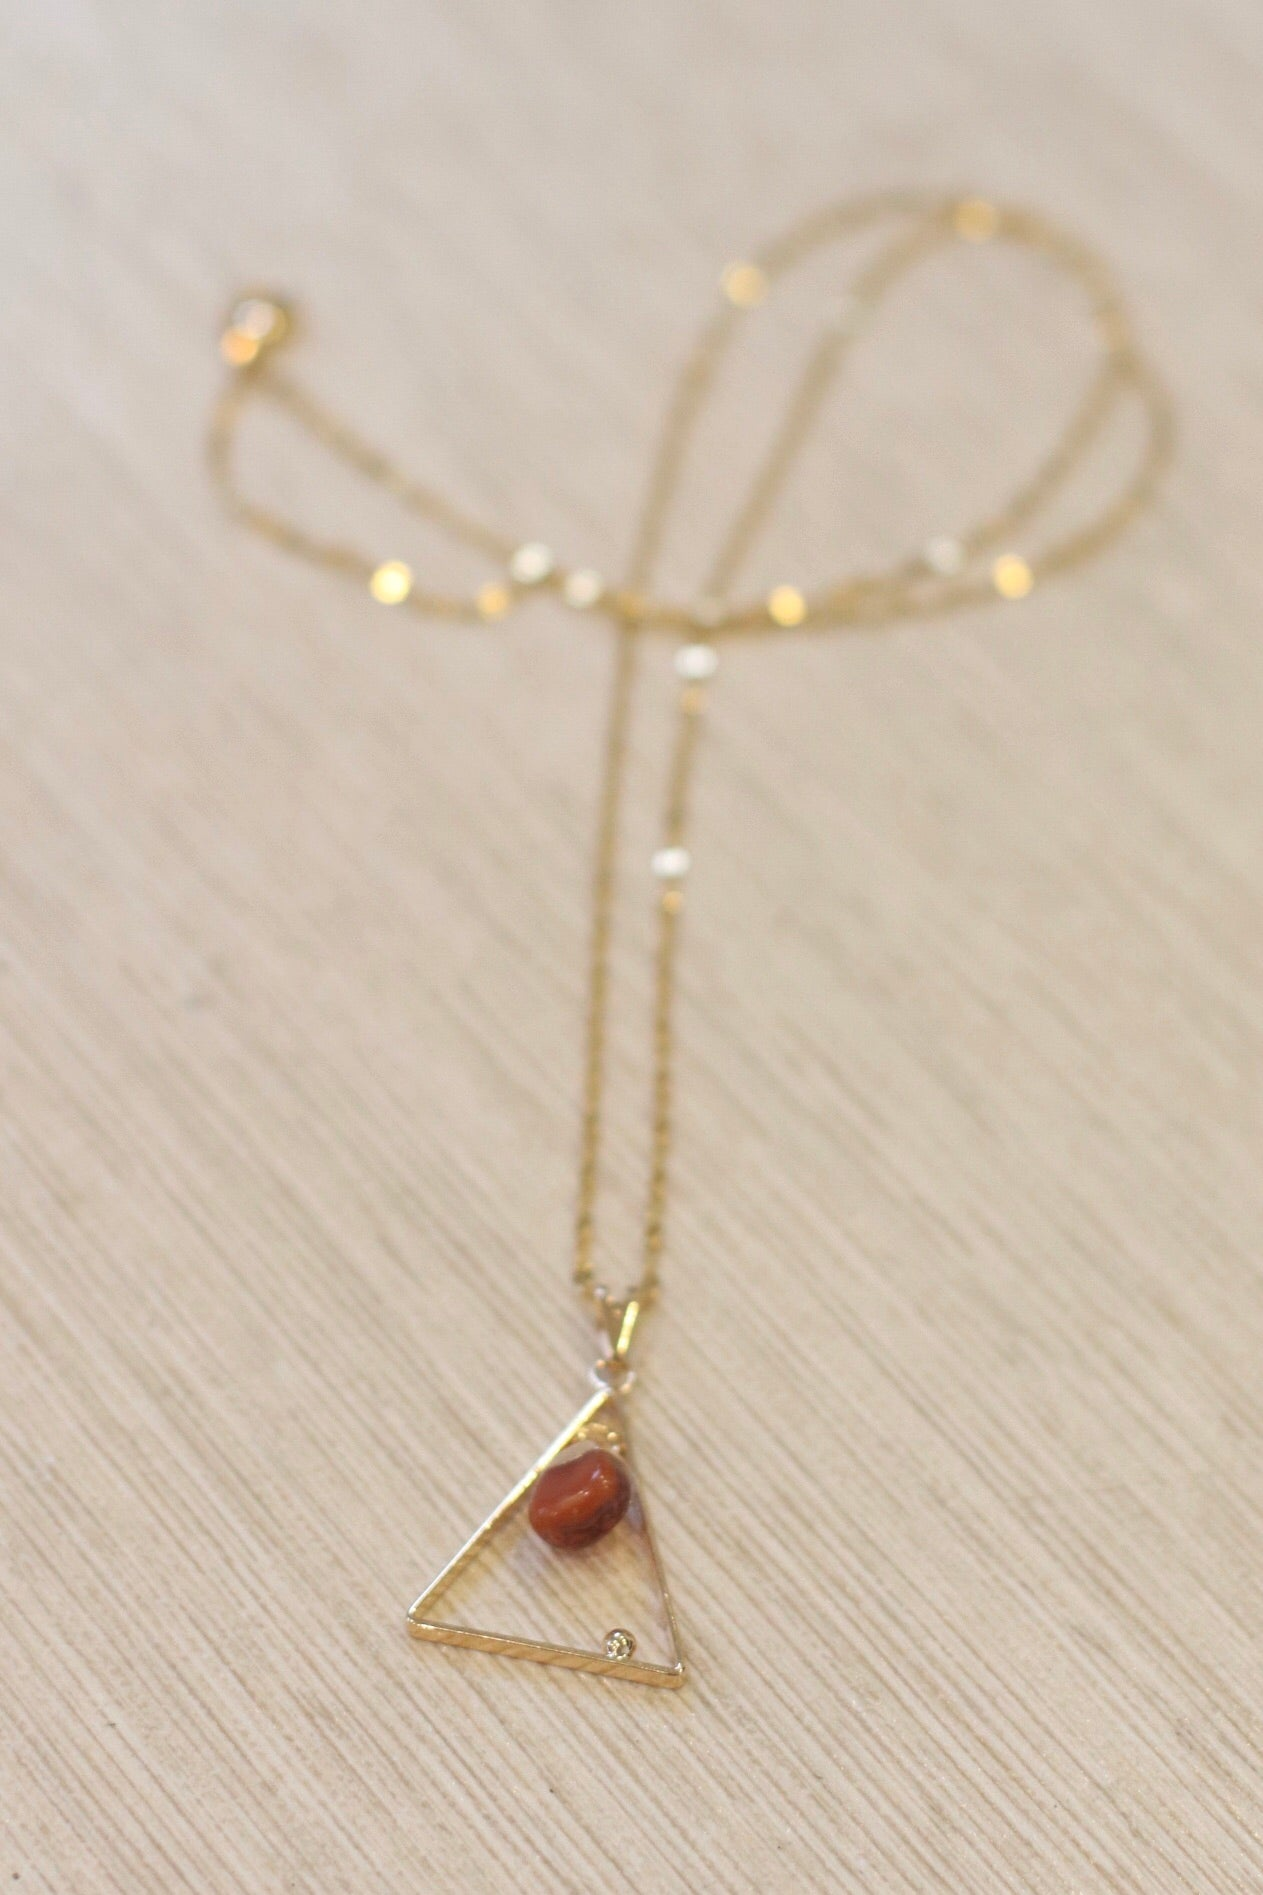 The Carnelian Necklace